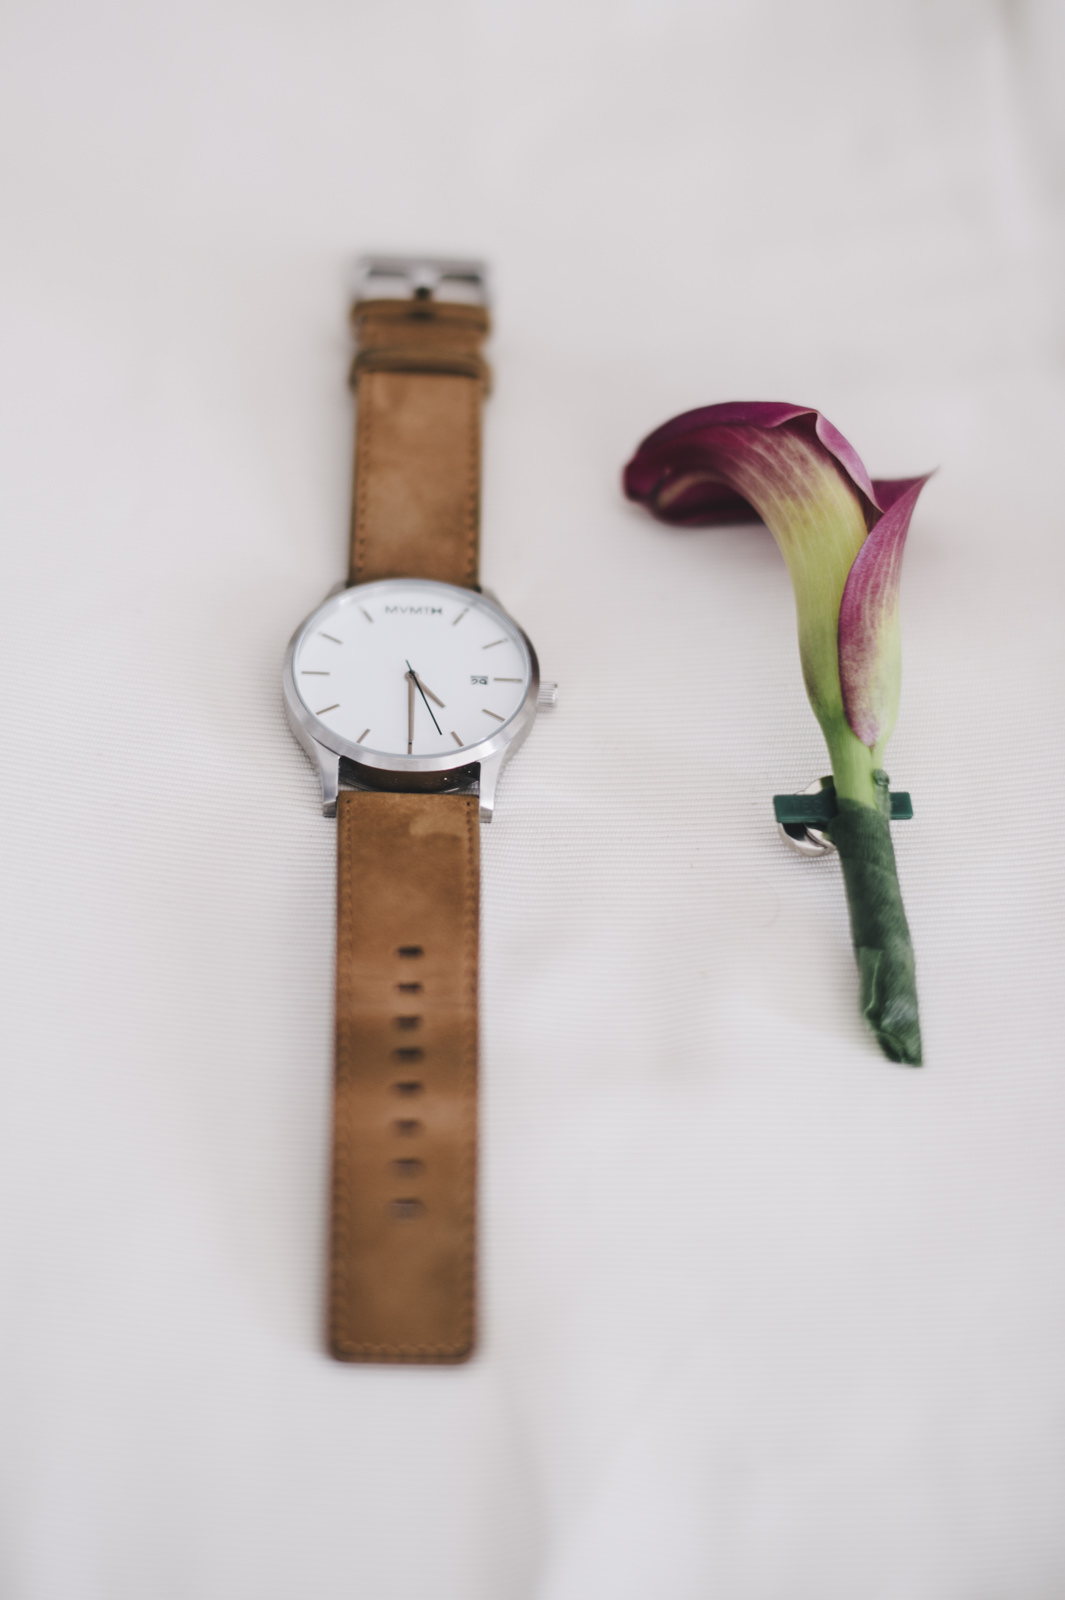 groom's watch and boutonniere